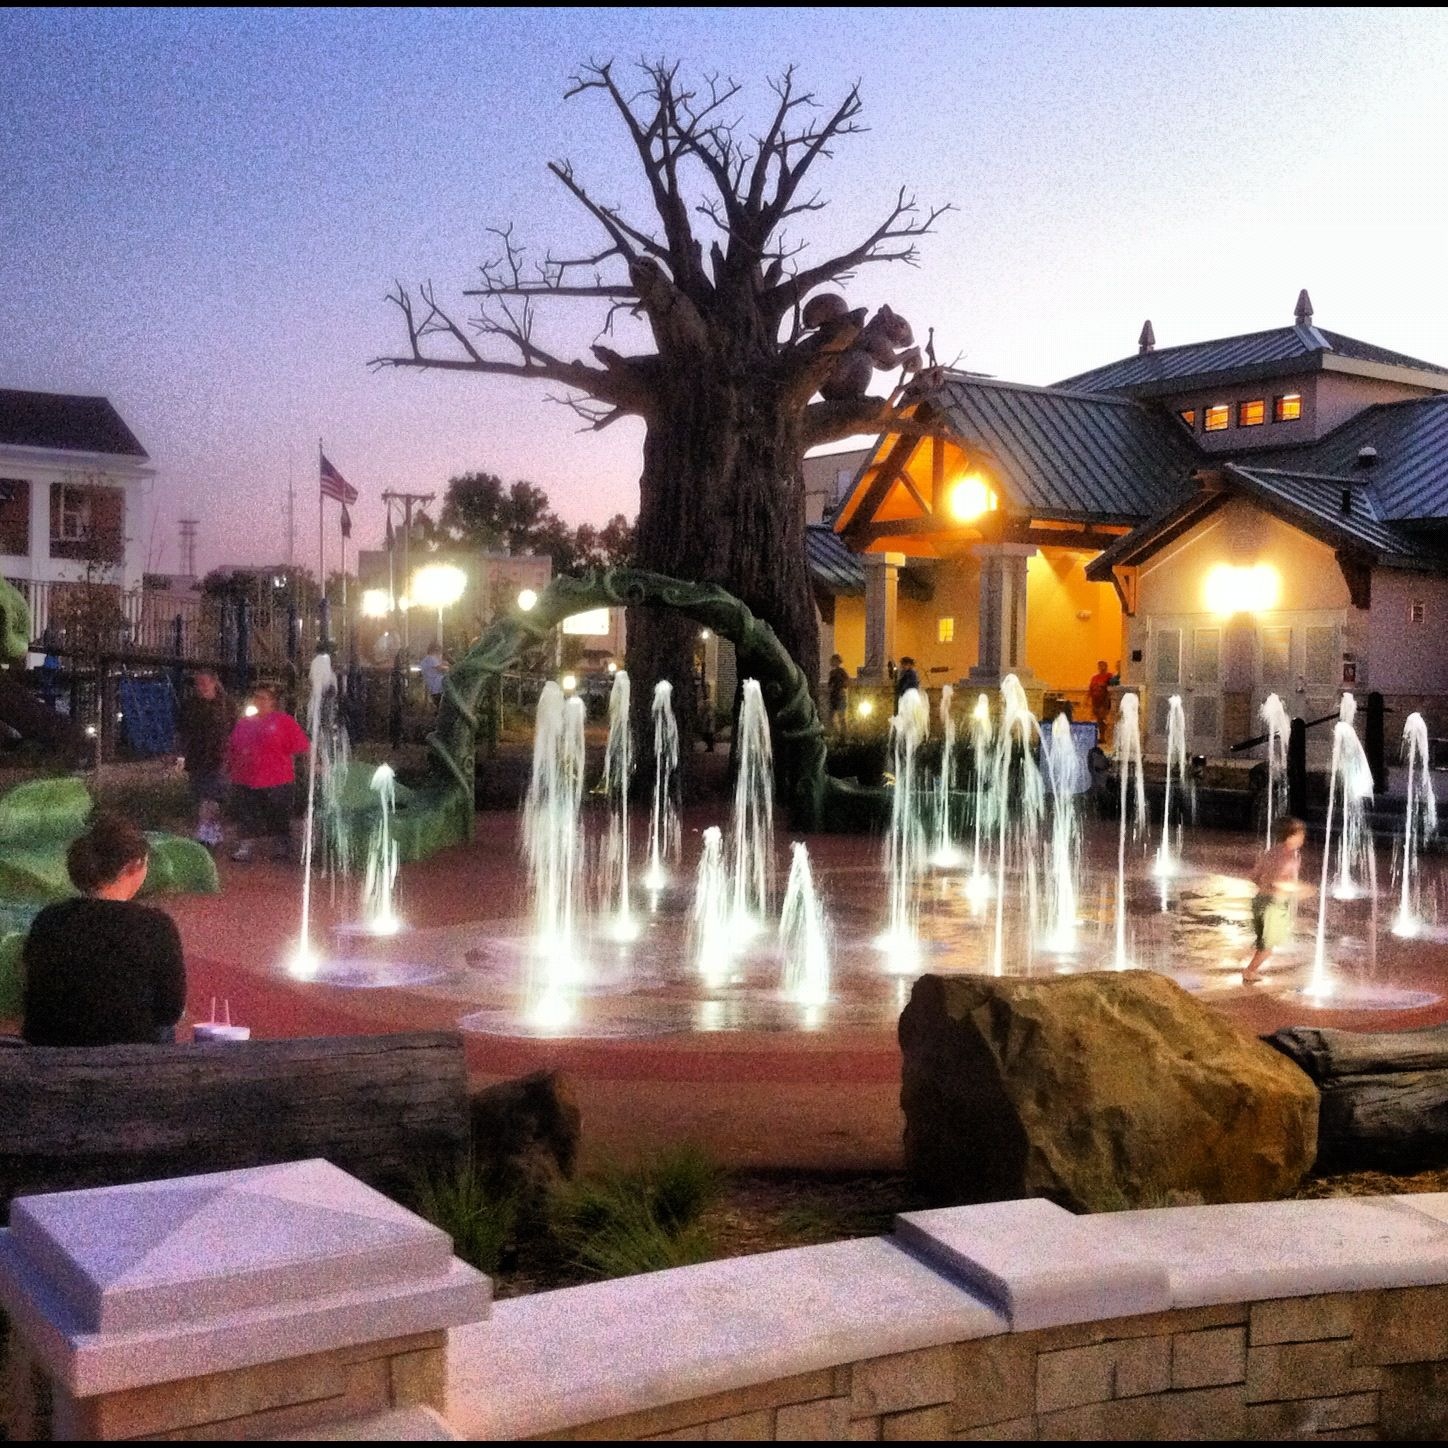 River Front Park in Owensboro KY